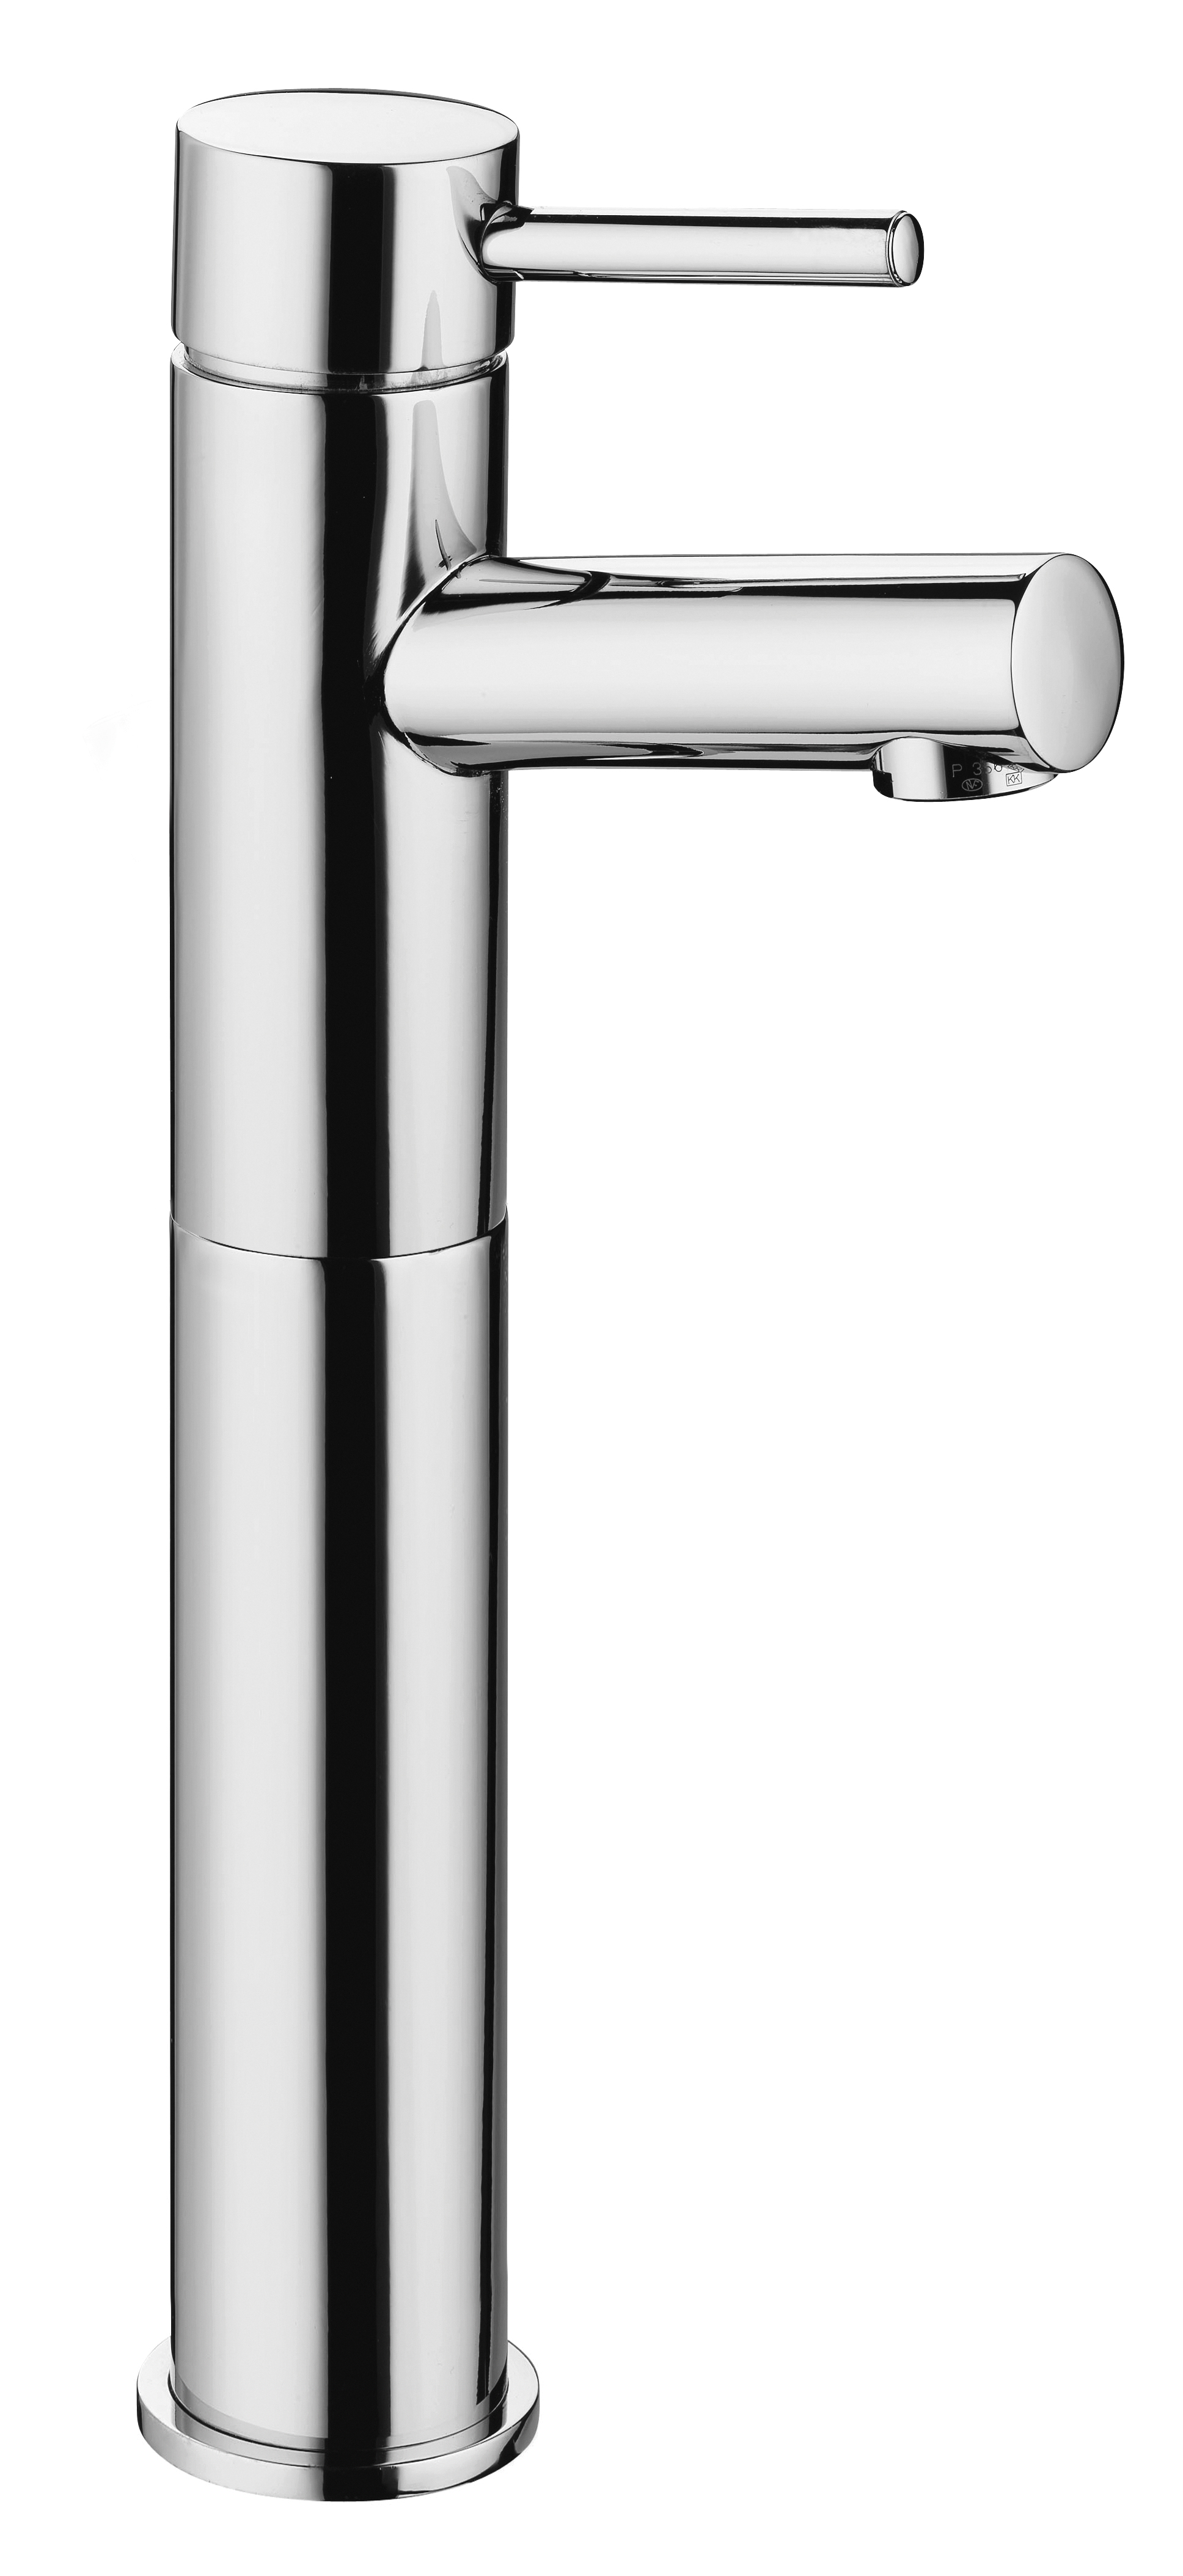 Extended Basin mixer